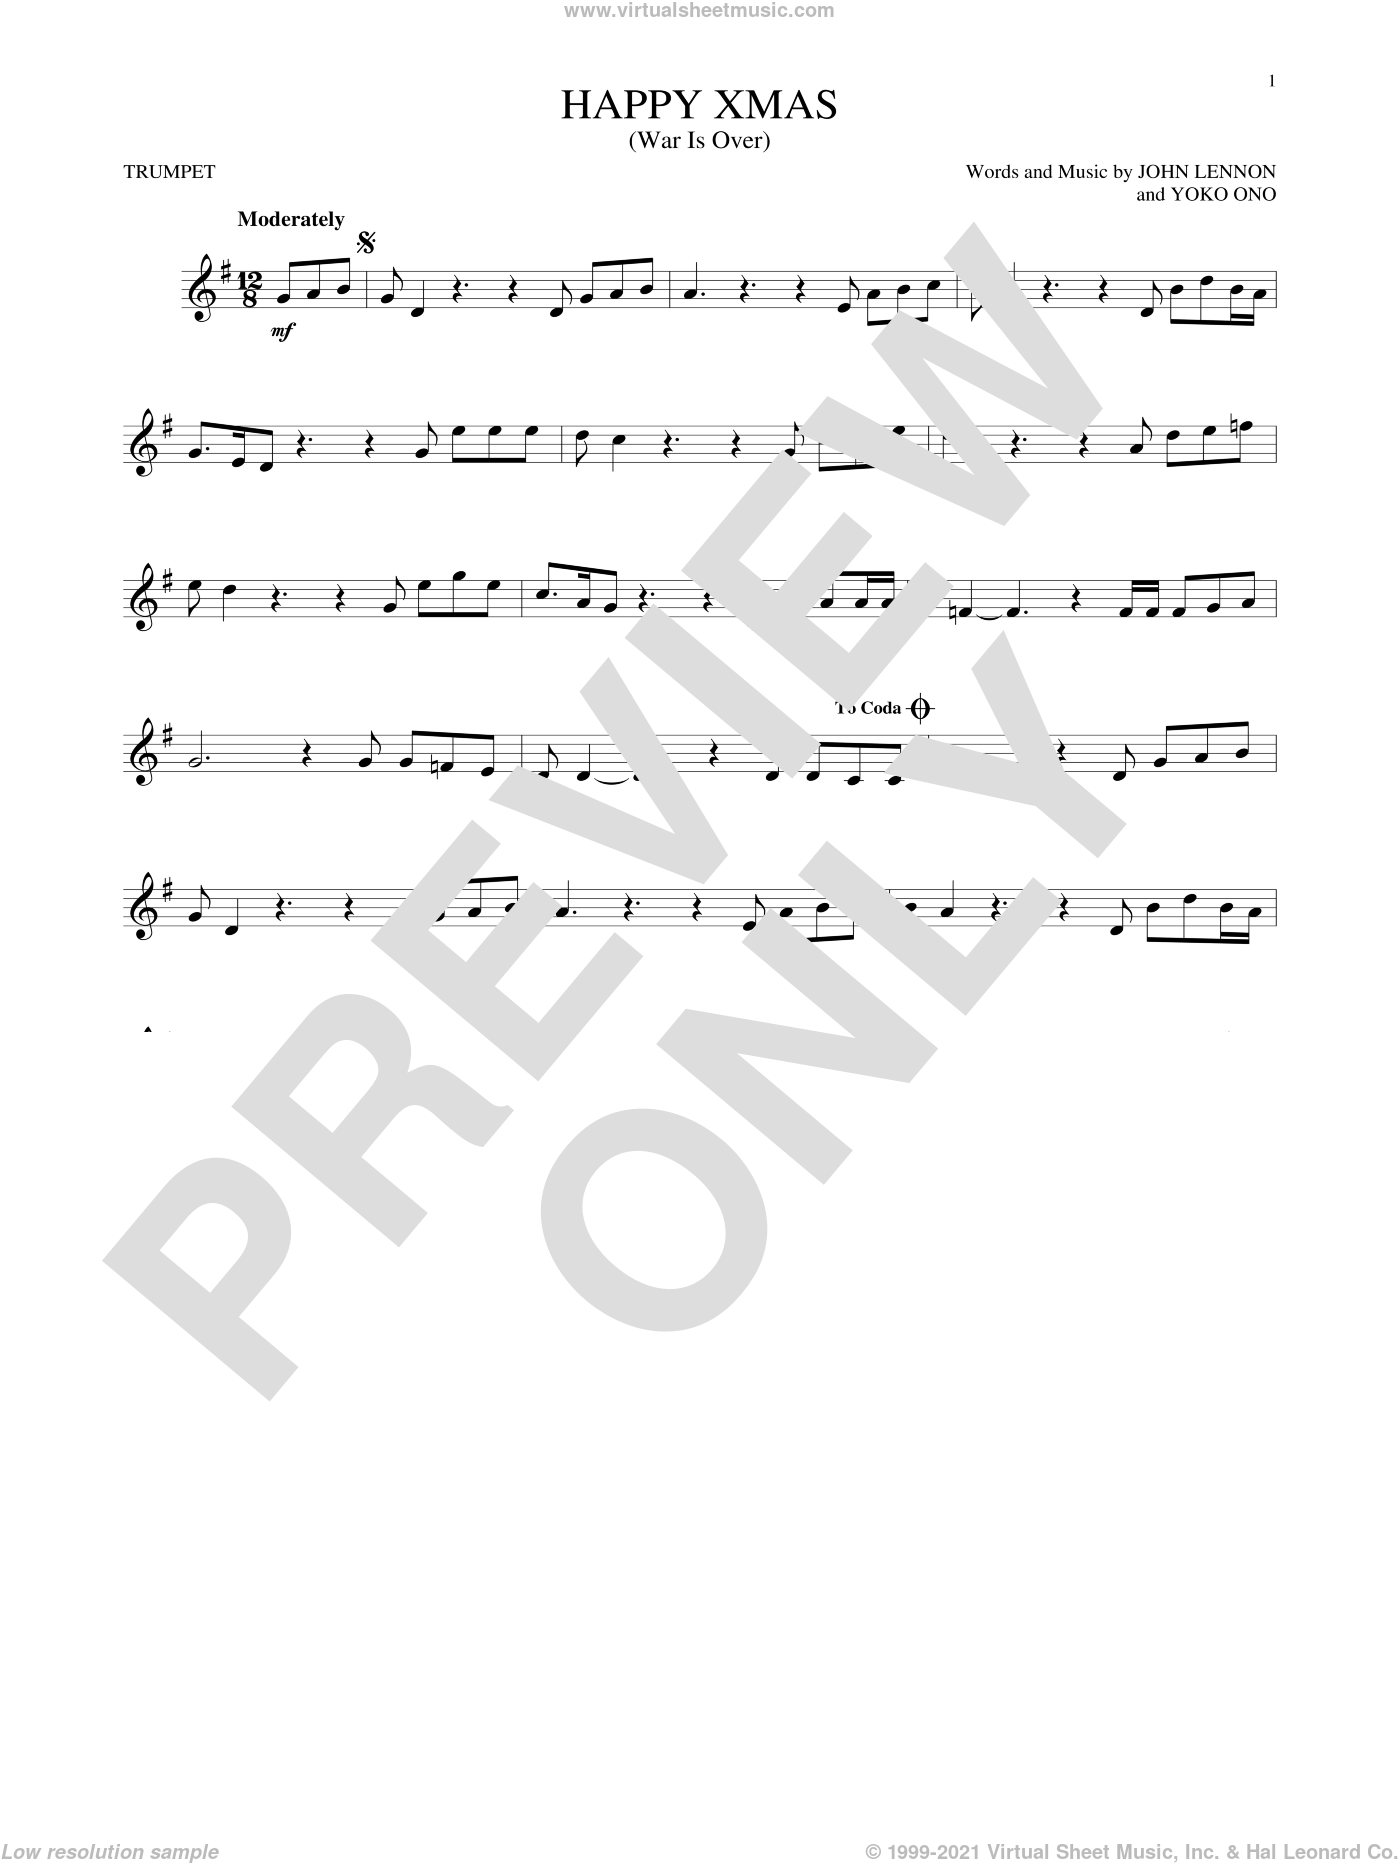 Happy Xmas (War Is Over) sheet music for trumpet solo by John Lennon, Sarah McLachlan and Yoko Ono, intermediate skill level